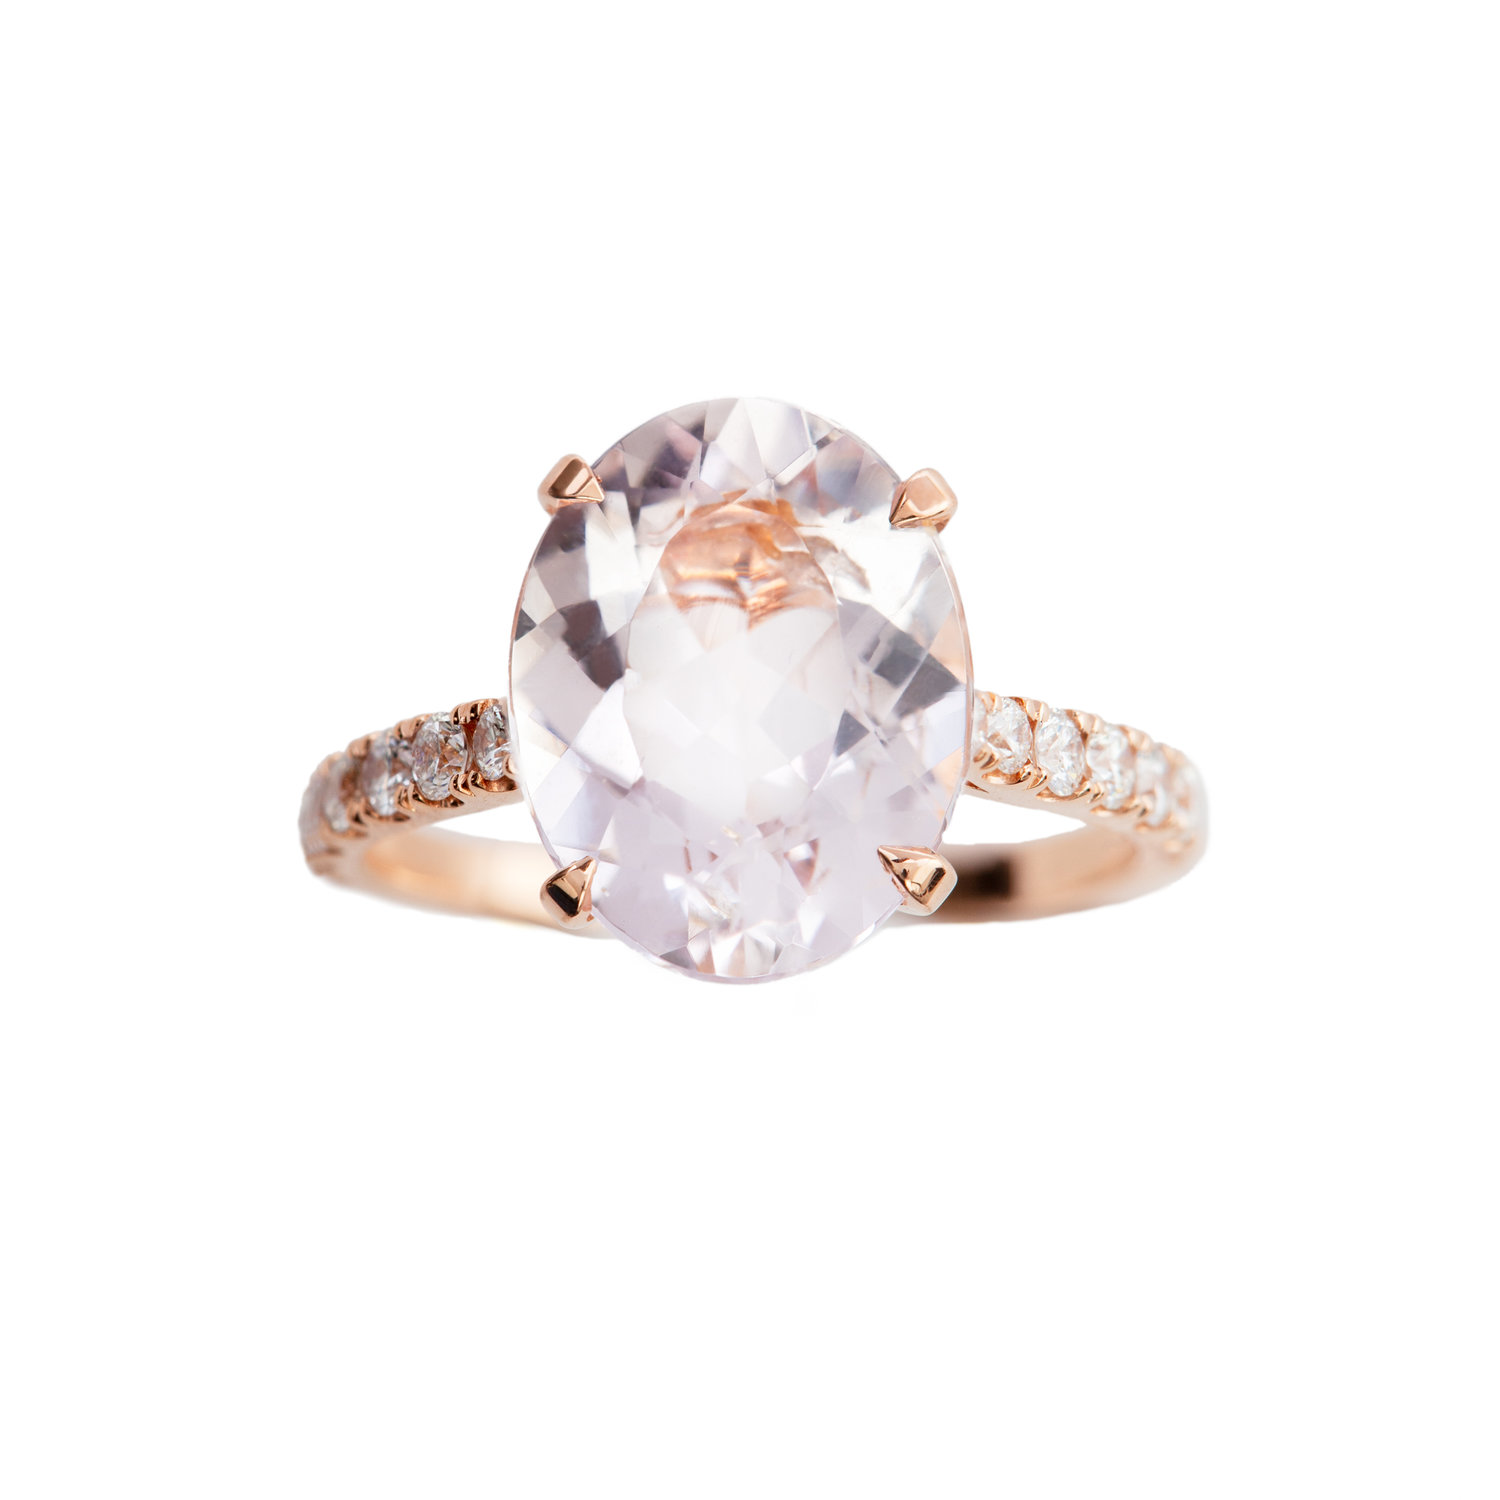 MORGANITE ENGAGEMENT RING - 35.000 NOK. 18 ct yellow gold ring with 3,62 ct oval cut pink morganite. 0,37 ct diamonds.